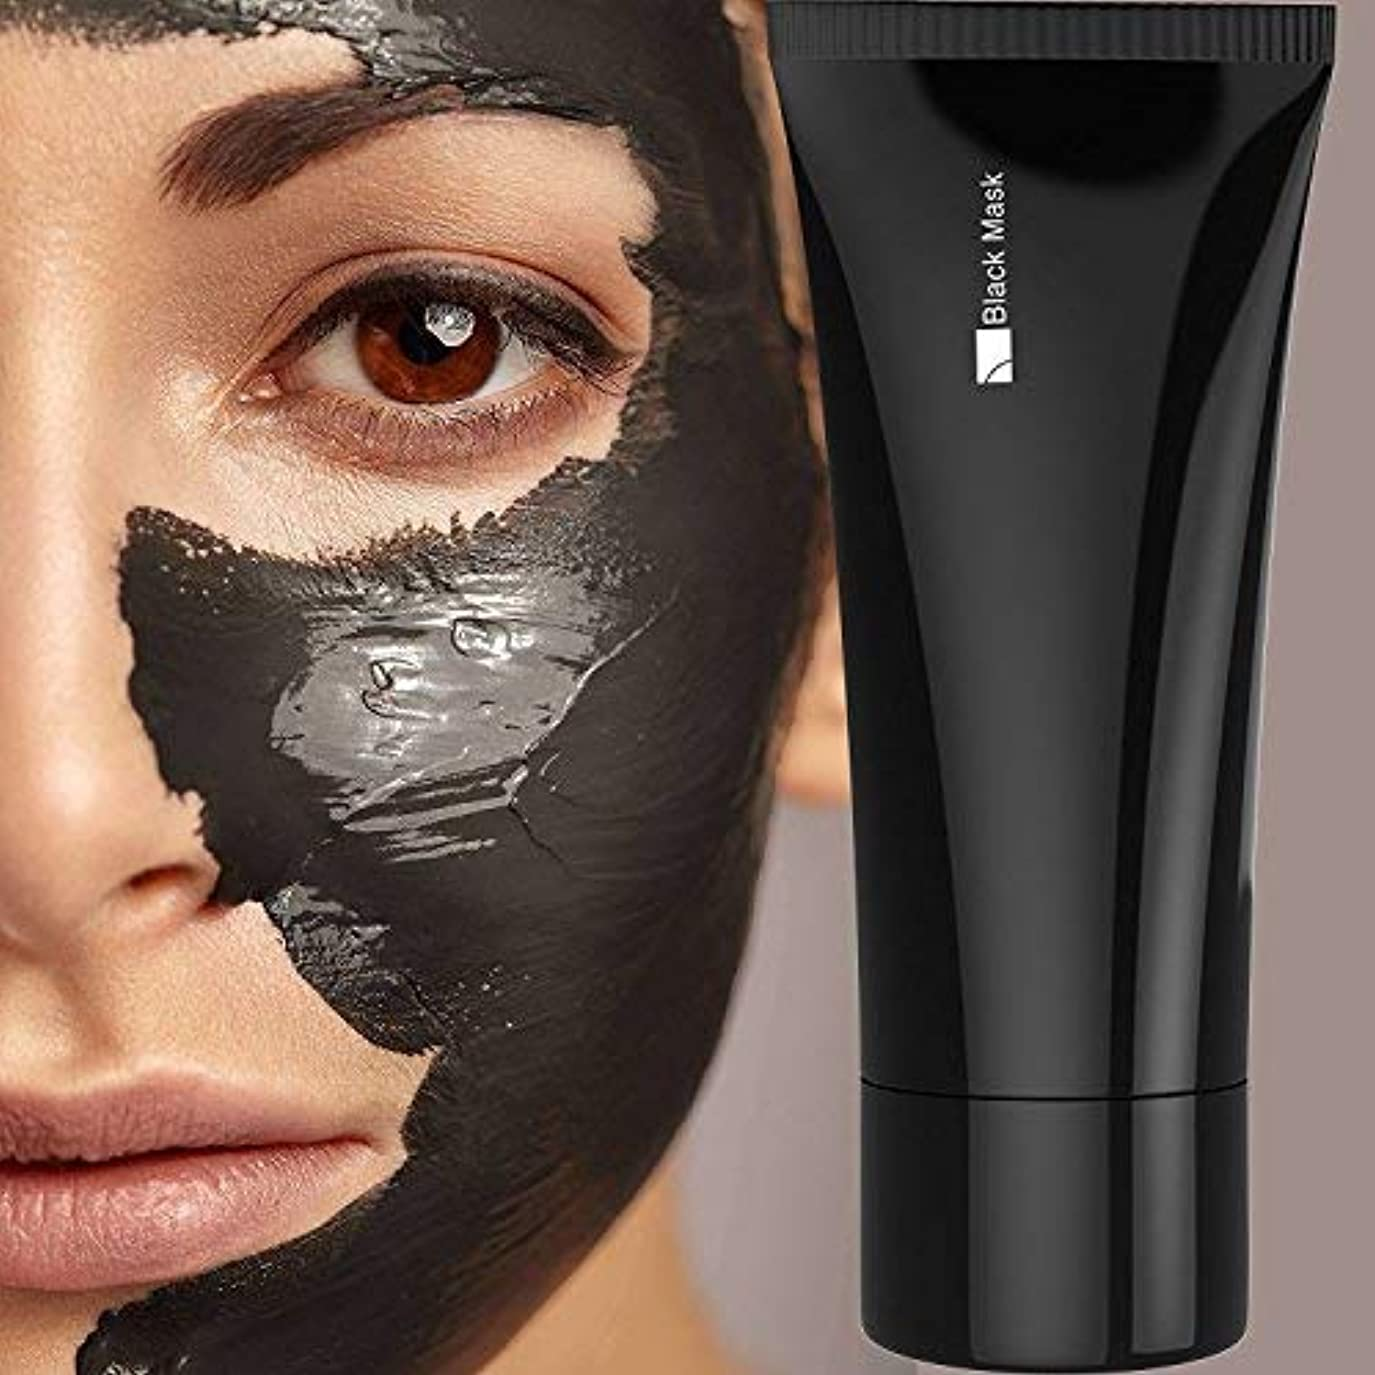 自発的法律技術者Blackhead Remover FACEAPEEL Face Peel Black Mud Mask Acne Pore Cleansing